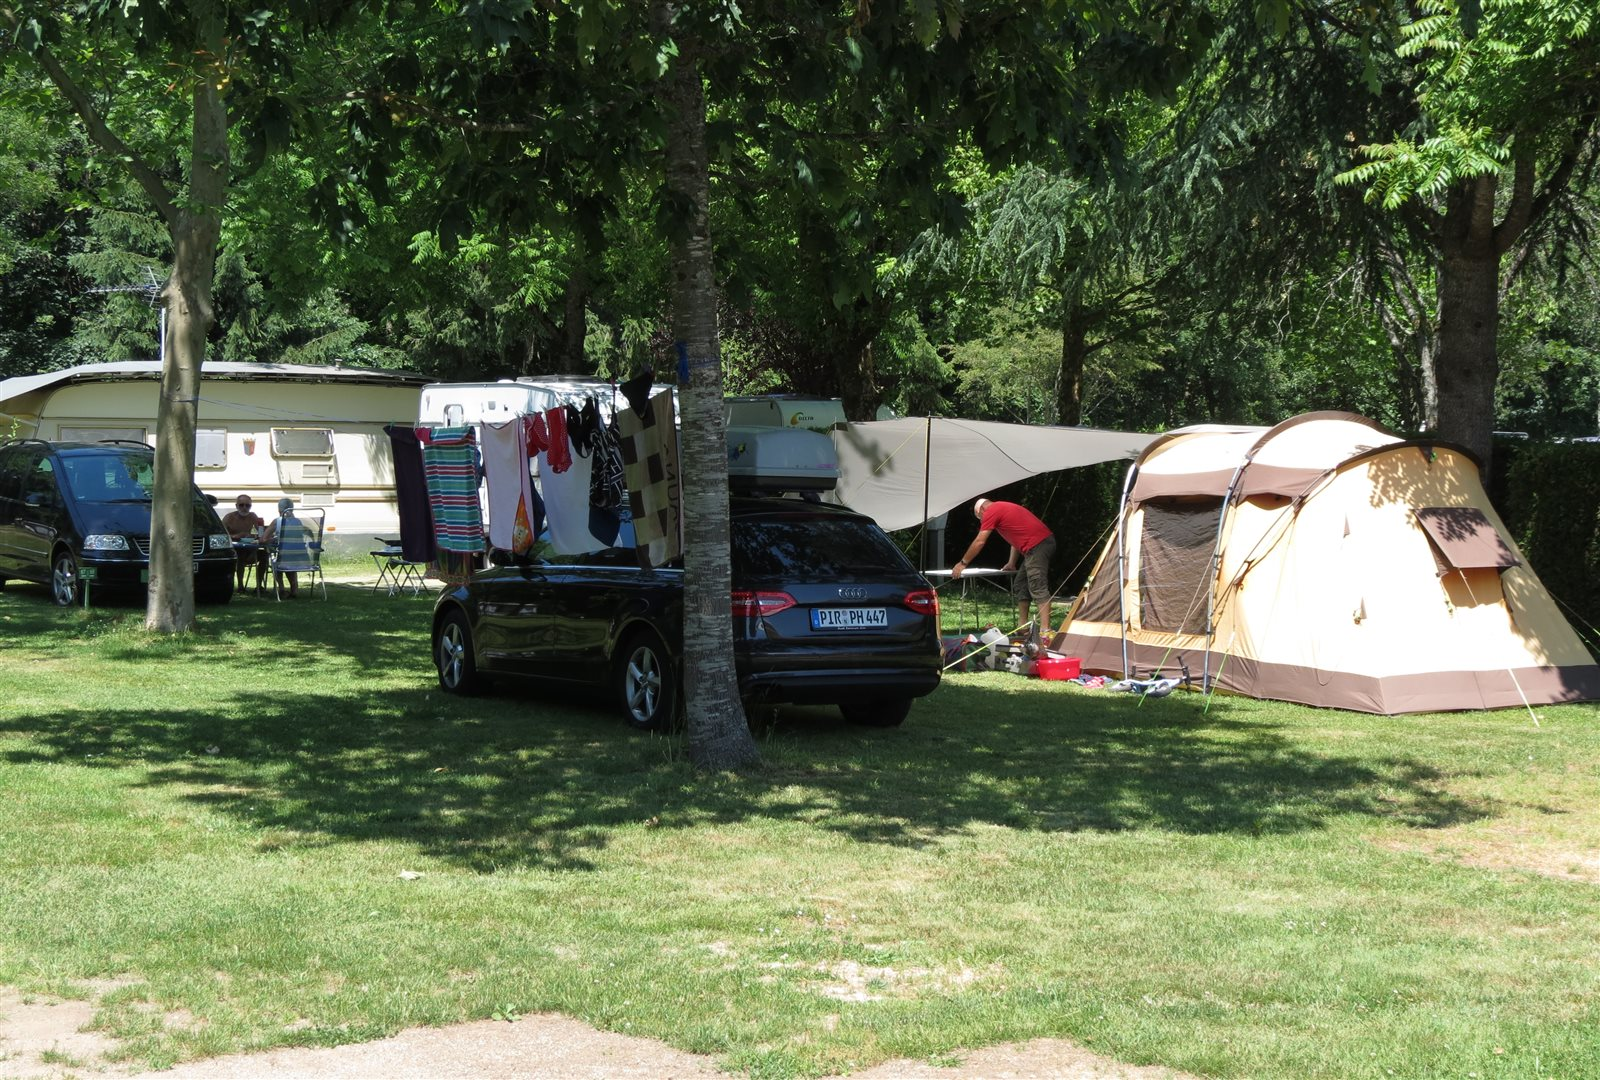 Campsite Les rives de la Doller